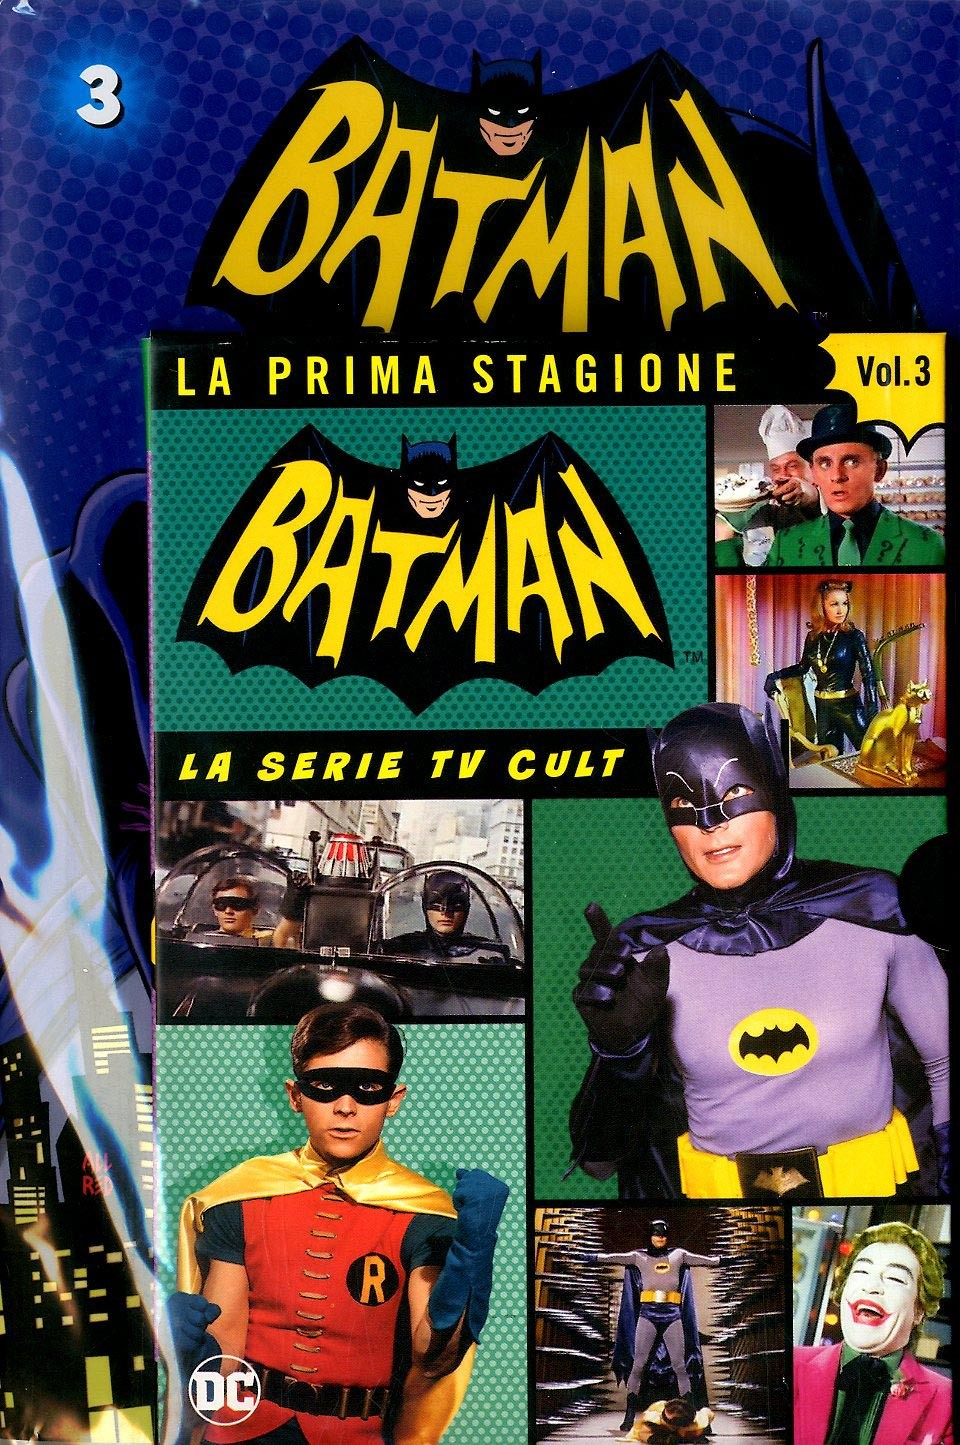 Batman '66 (Dvd + Fumetto) - N° 3 - Batman '66 - Rw Lion